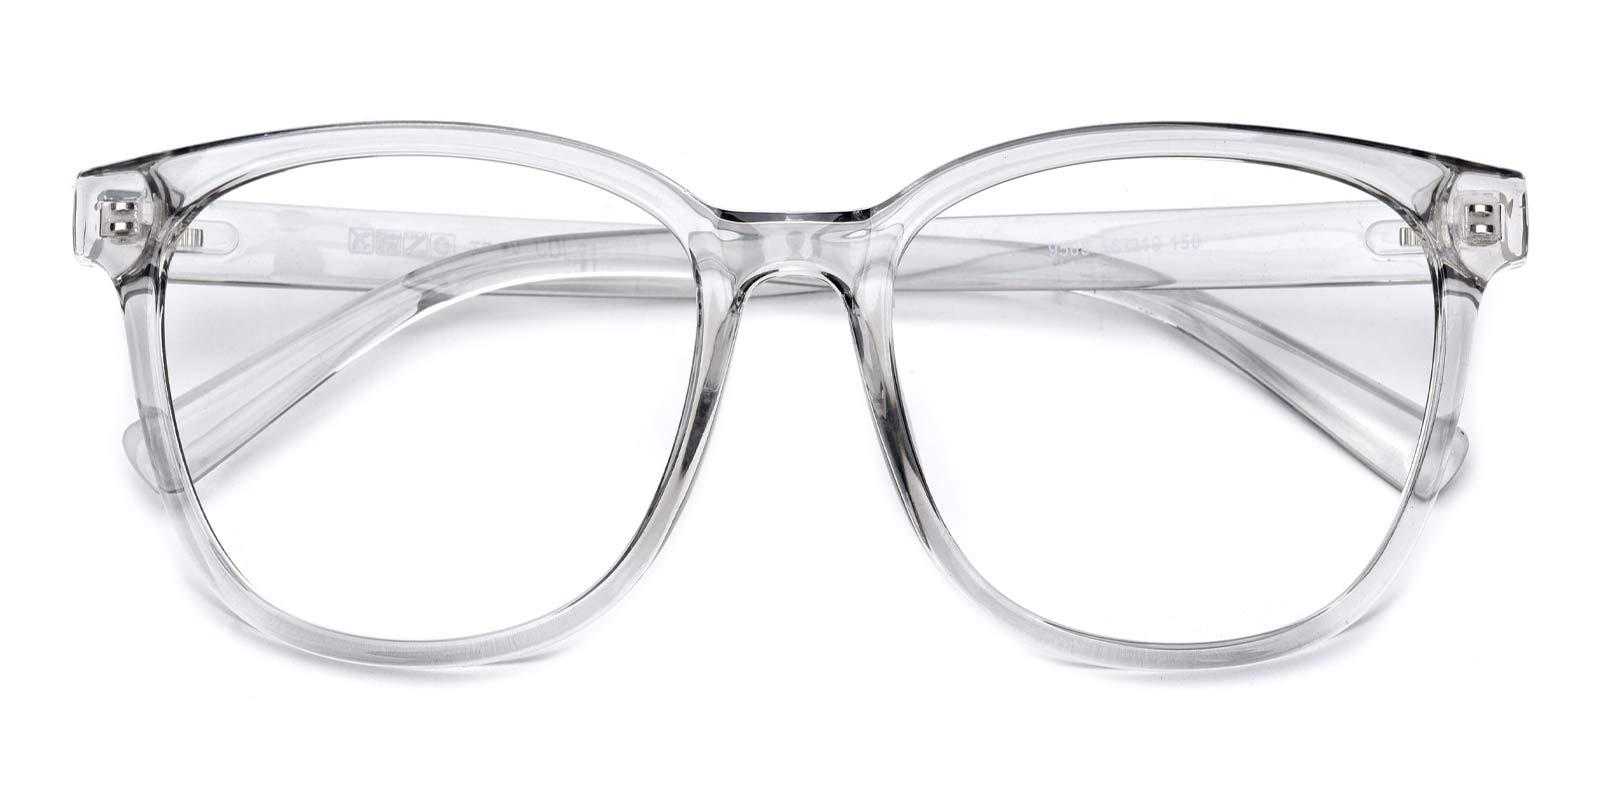 Edgar-Gray-Square-TR-Eyeglasses-detail